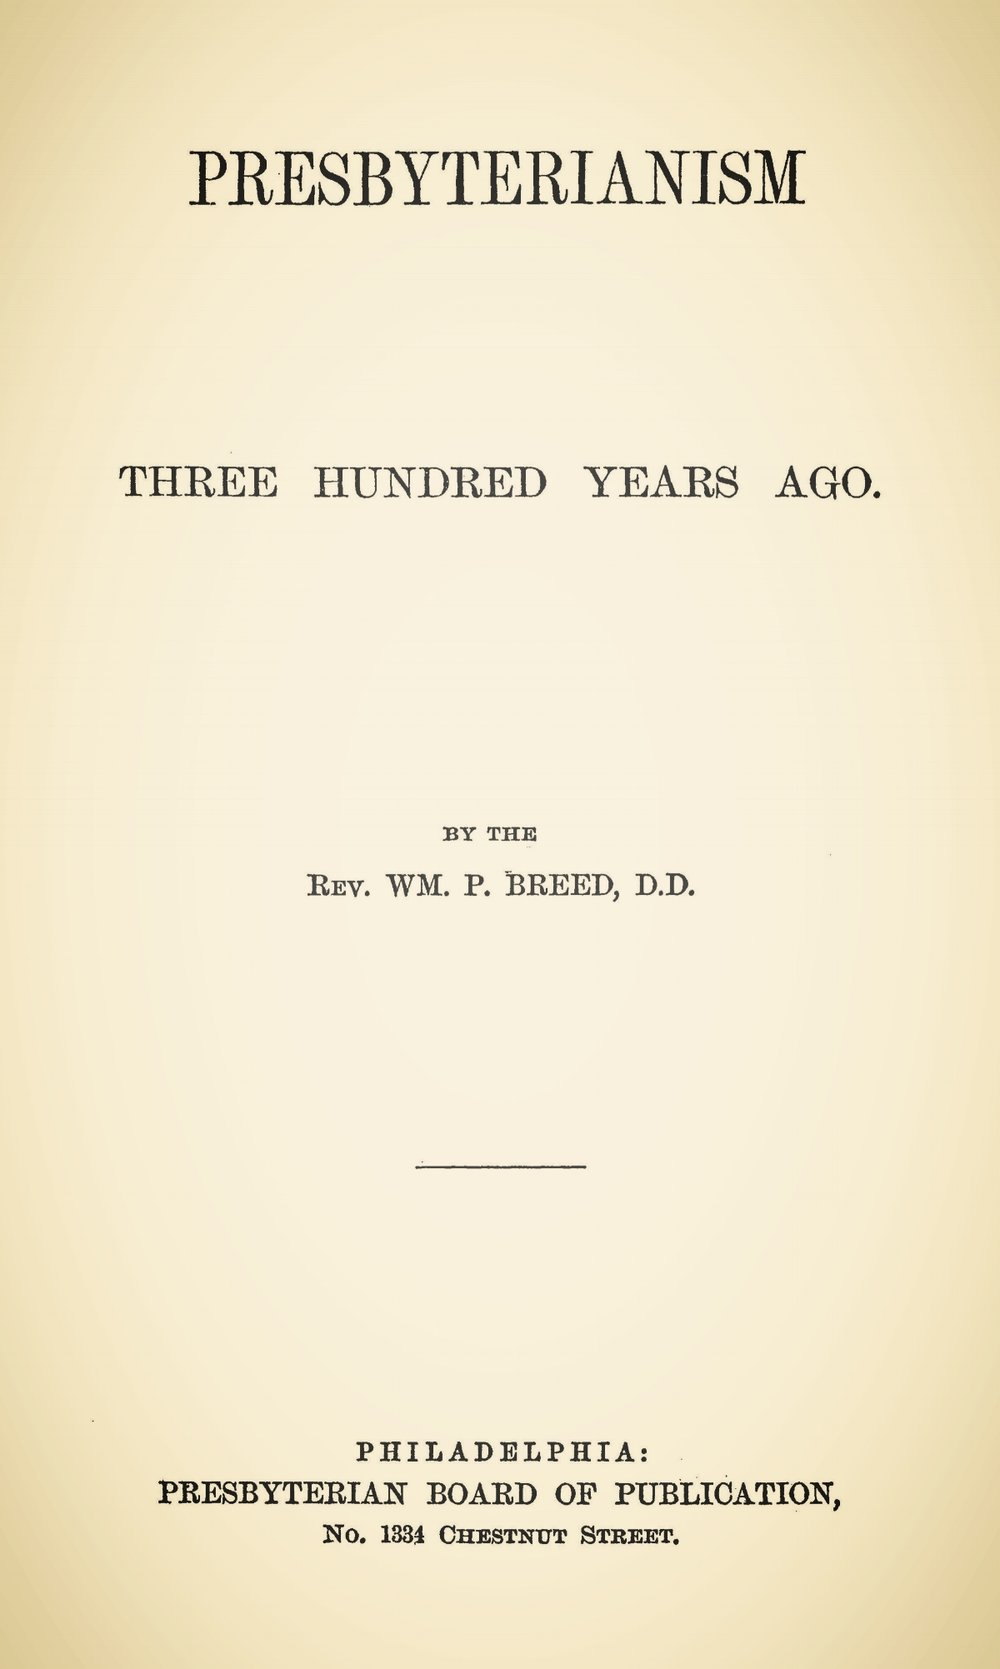 Breed, William Pratt, Presbyterianism Three Hundred Years Ago Title Page.jpg